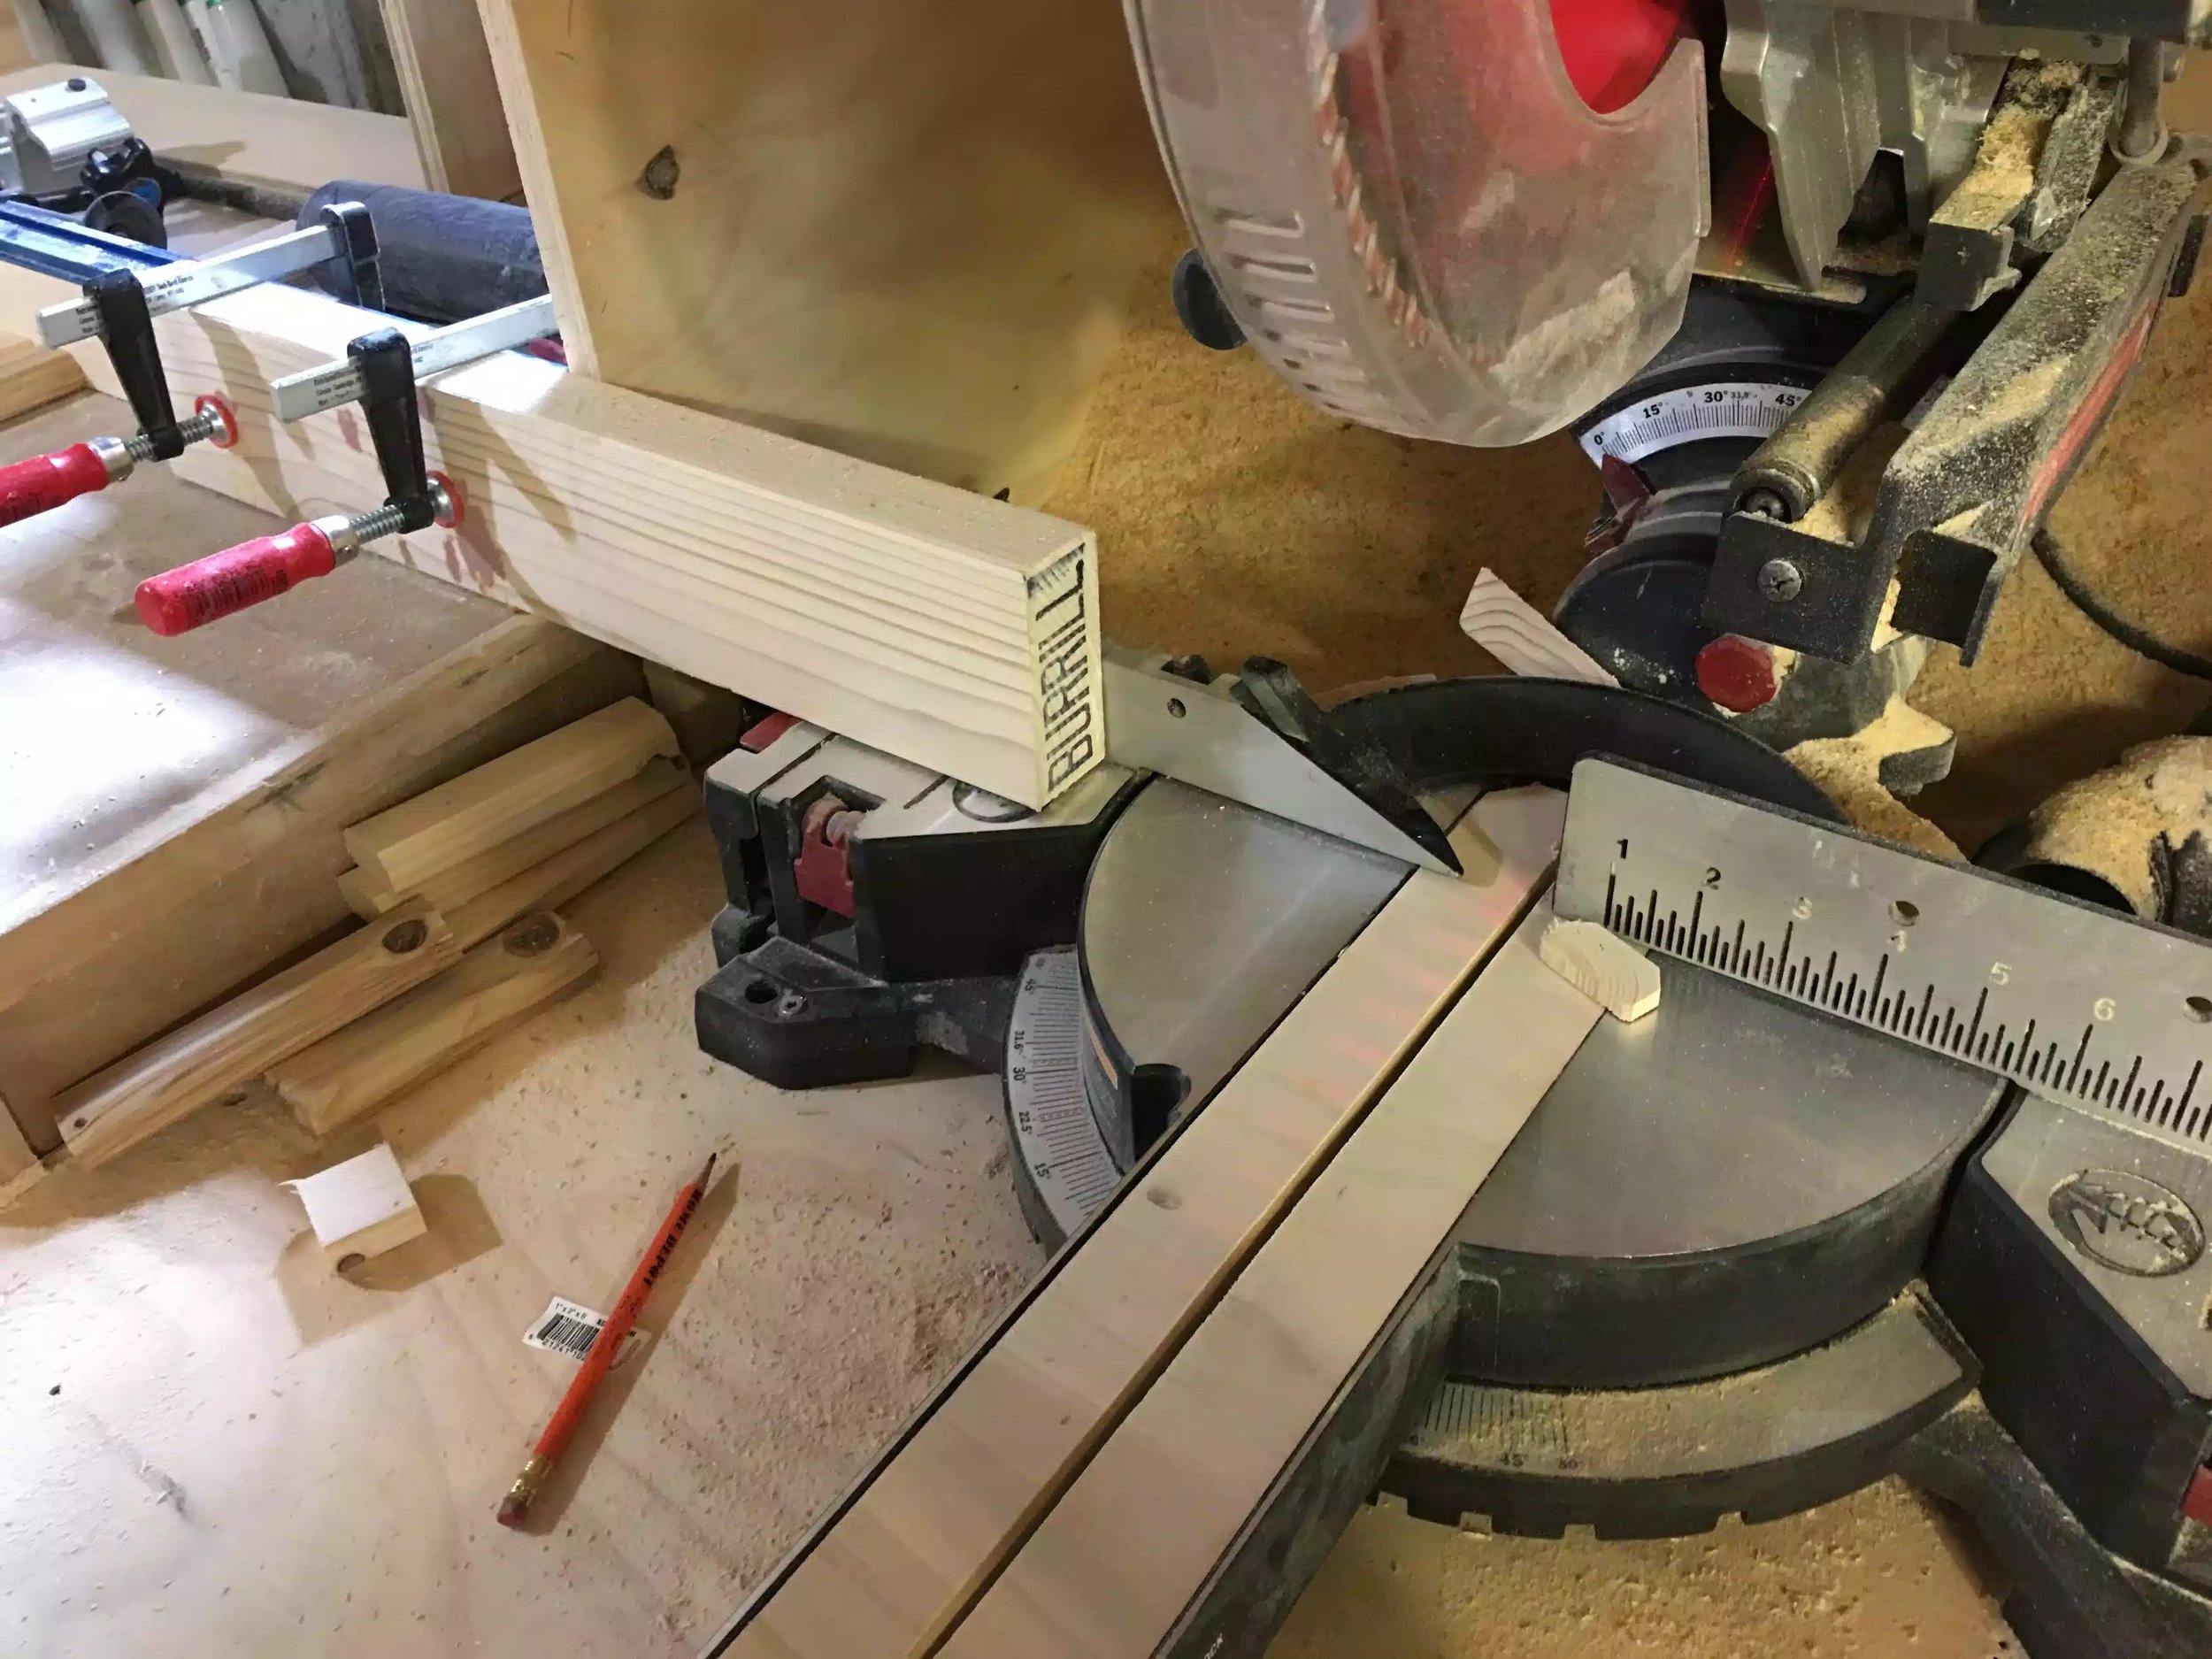 Here is another picture of my temporary stop block set-up on the chop saw.